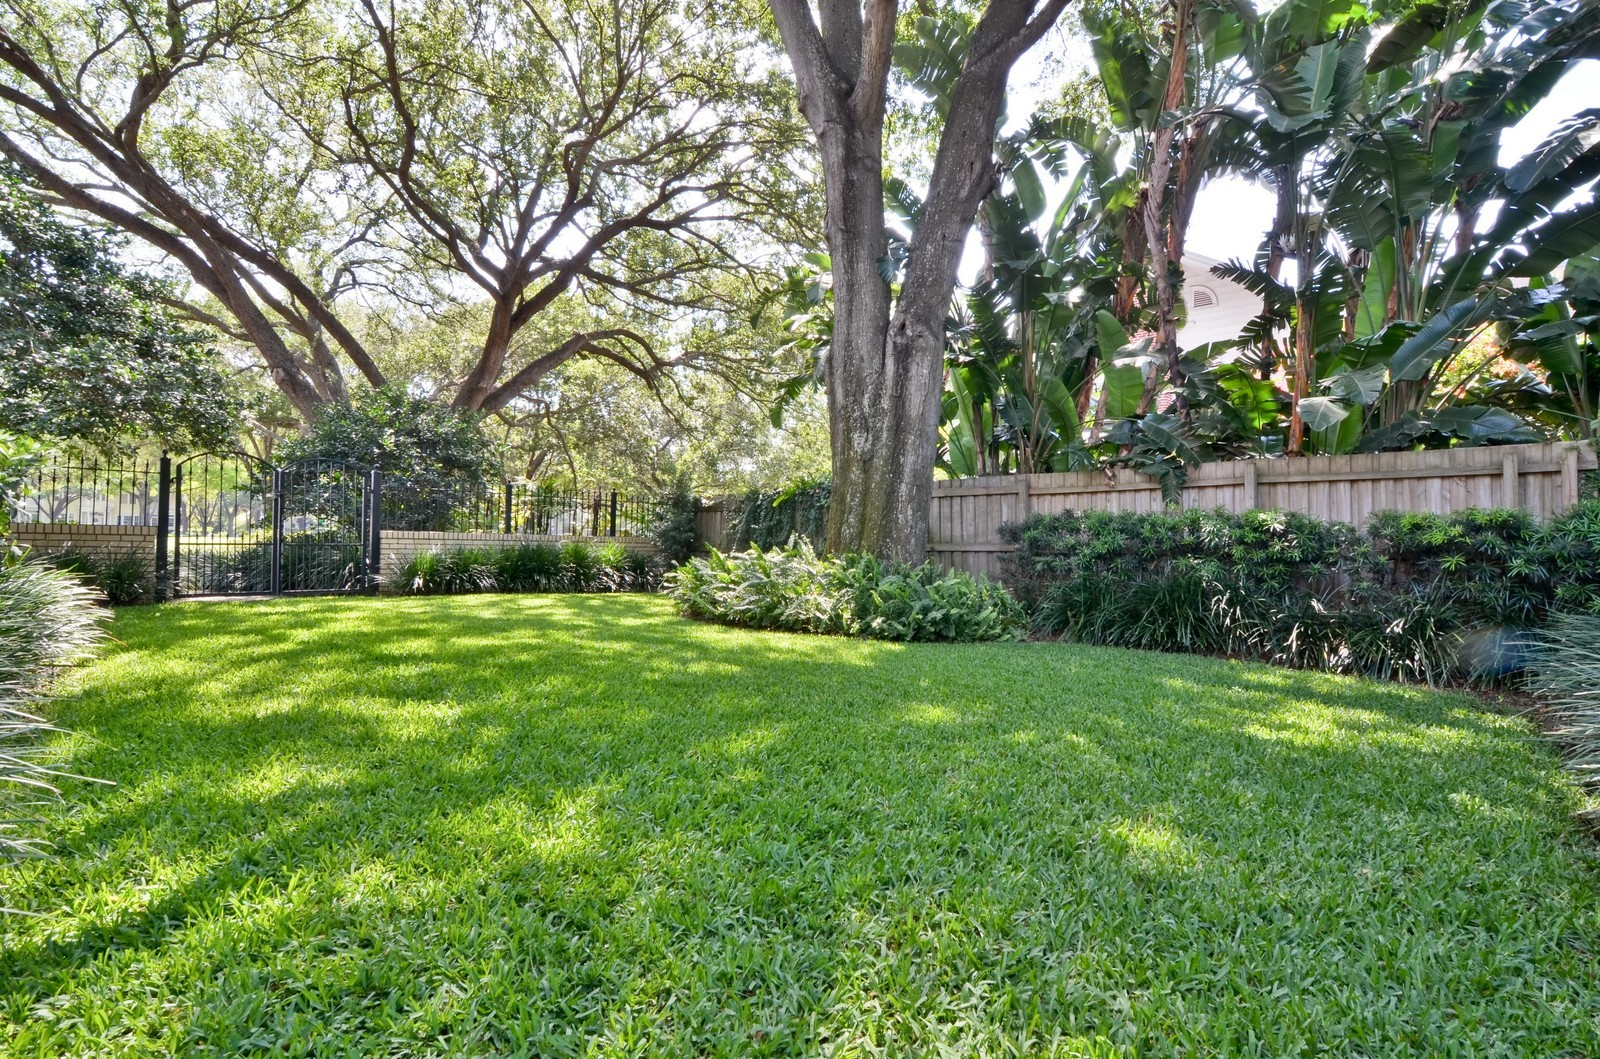 Real Estate Photography - 2223 S. Bendelow Trail, Tampa, FL, 33629 - Location 2